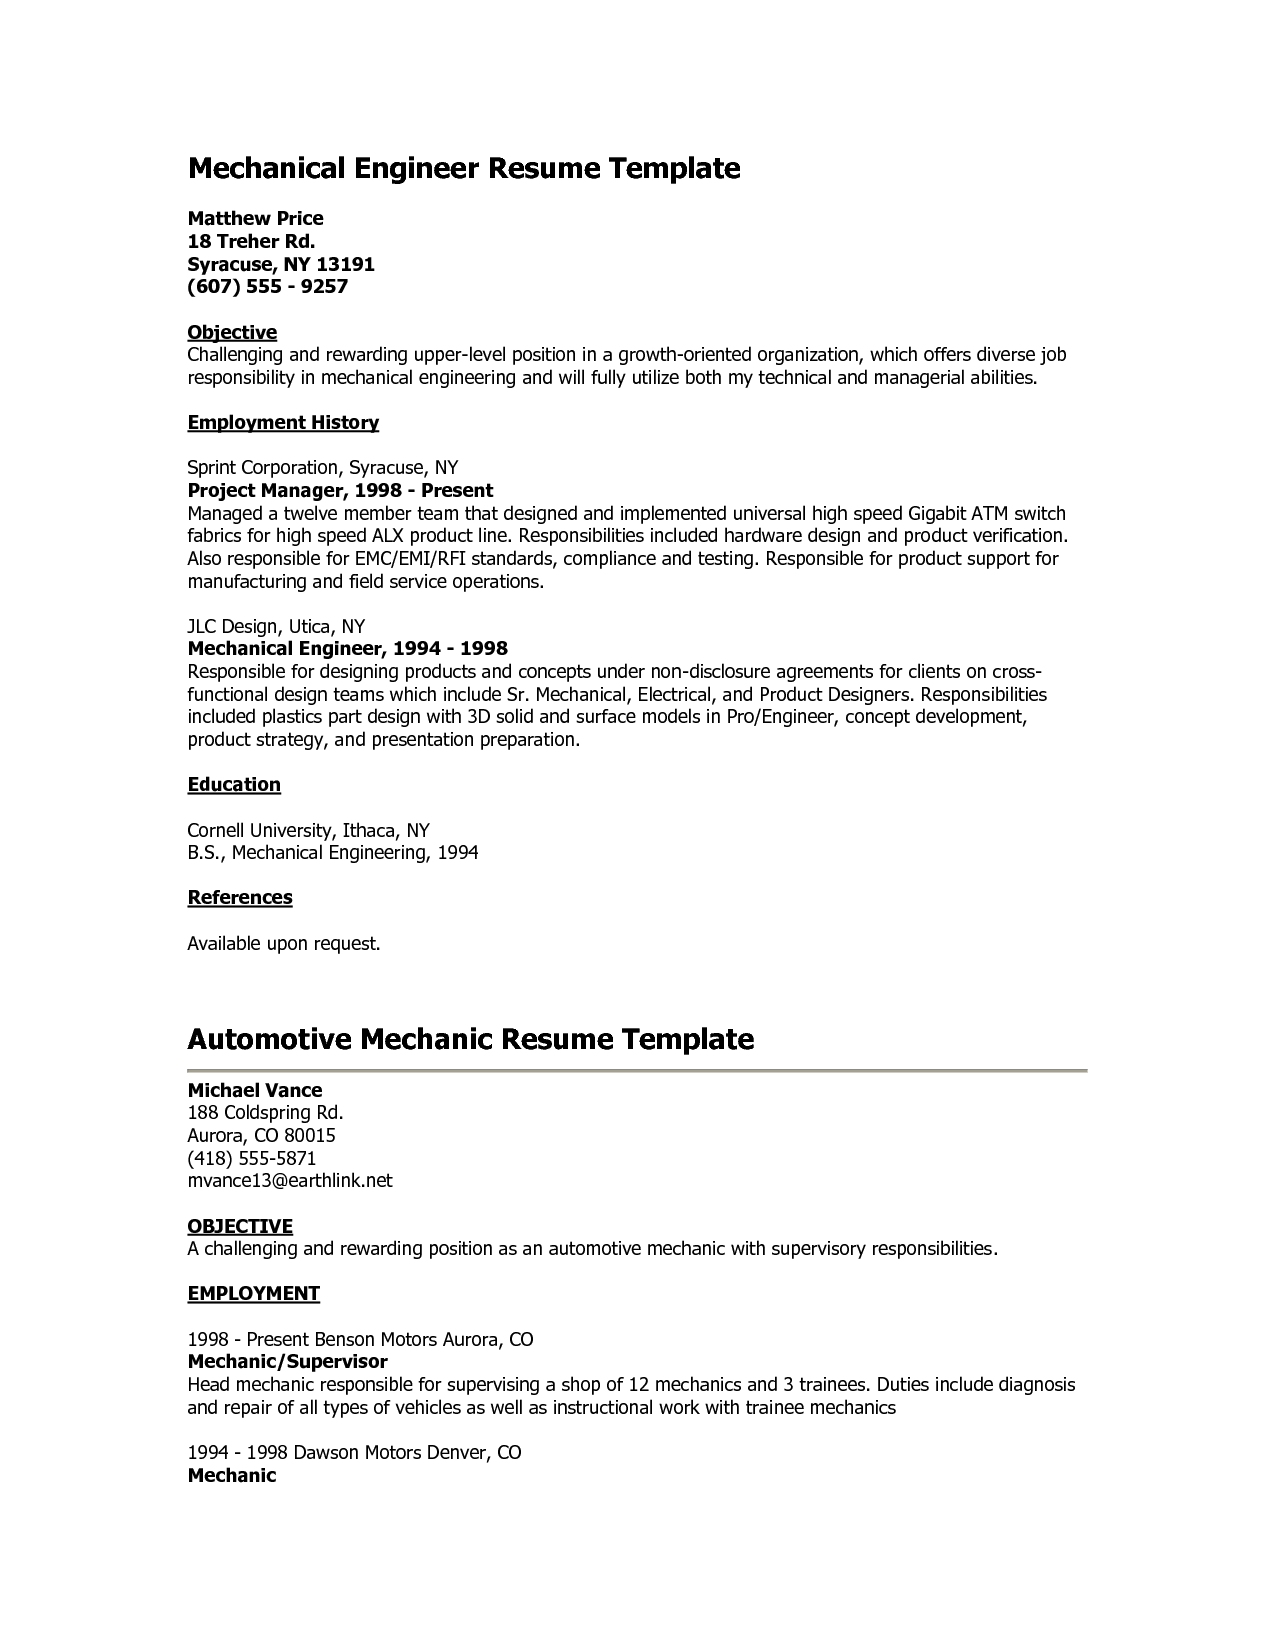 Entry Level Mechanical Engineering Resume Bank Teller Resume With No Experience  Httpwww.jobresume.website .